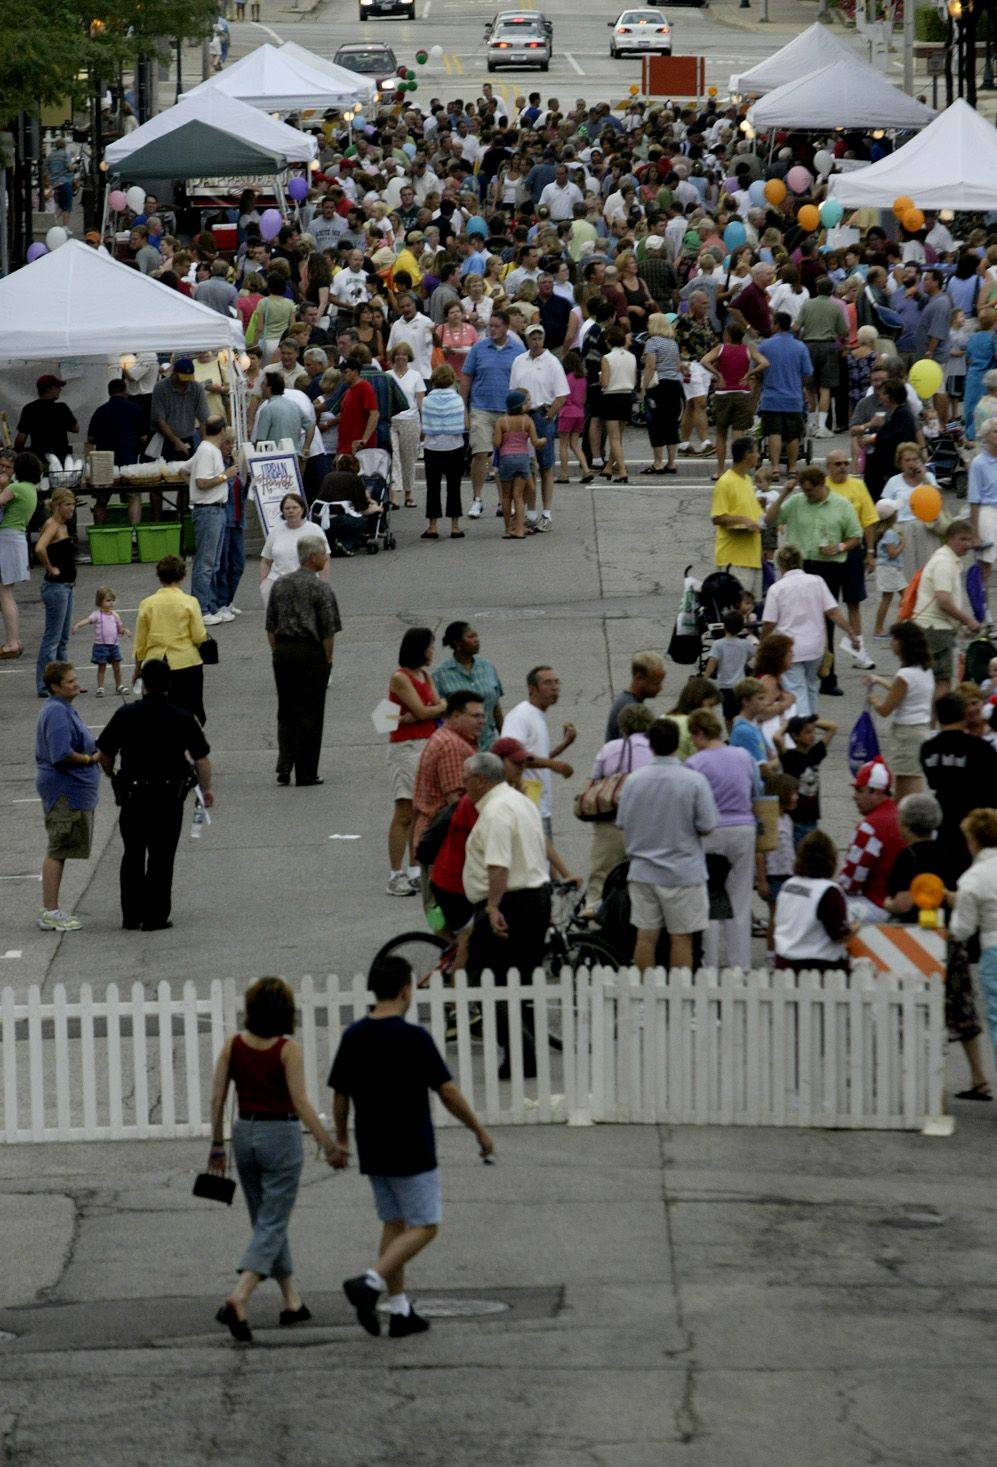 The Mane Event, a downtown Arlington Heights block party held the weekend of the Arlington Million, will continue despite news that Arlington Park is dropping its sponsorship of the event, organizers say.